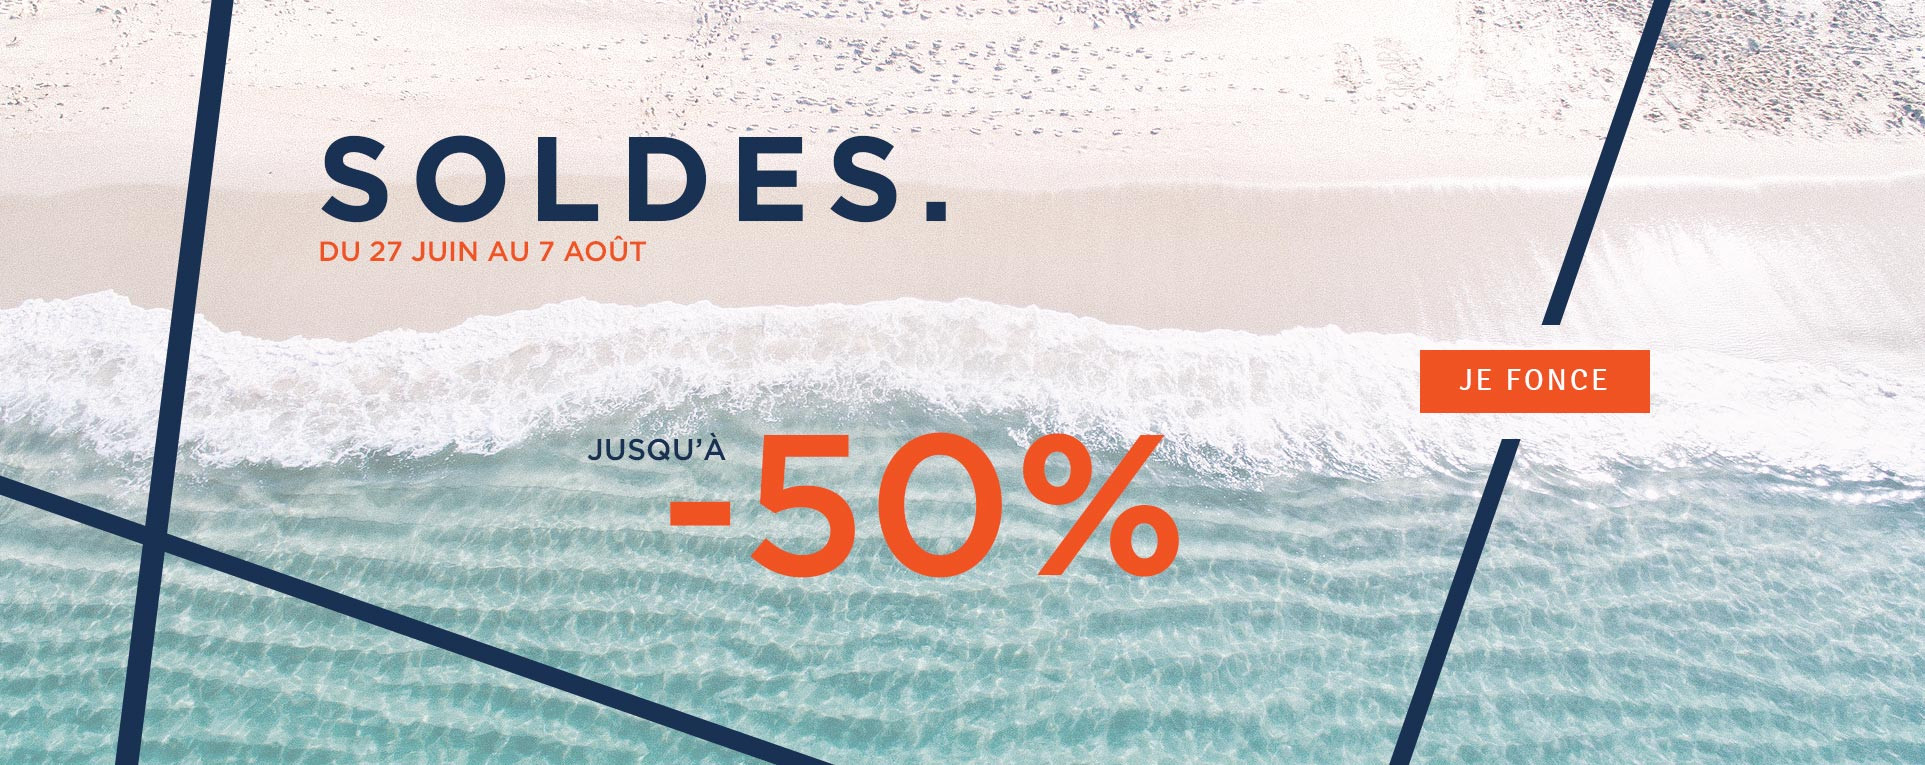 SOLDES SS 2018